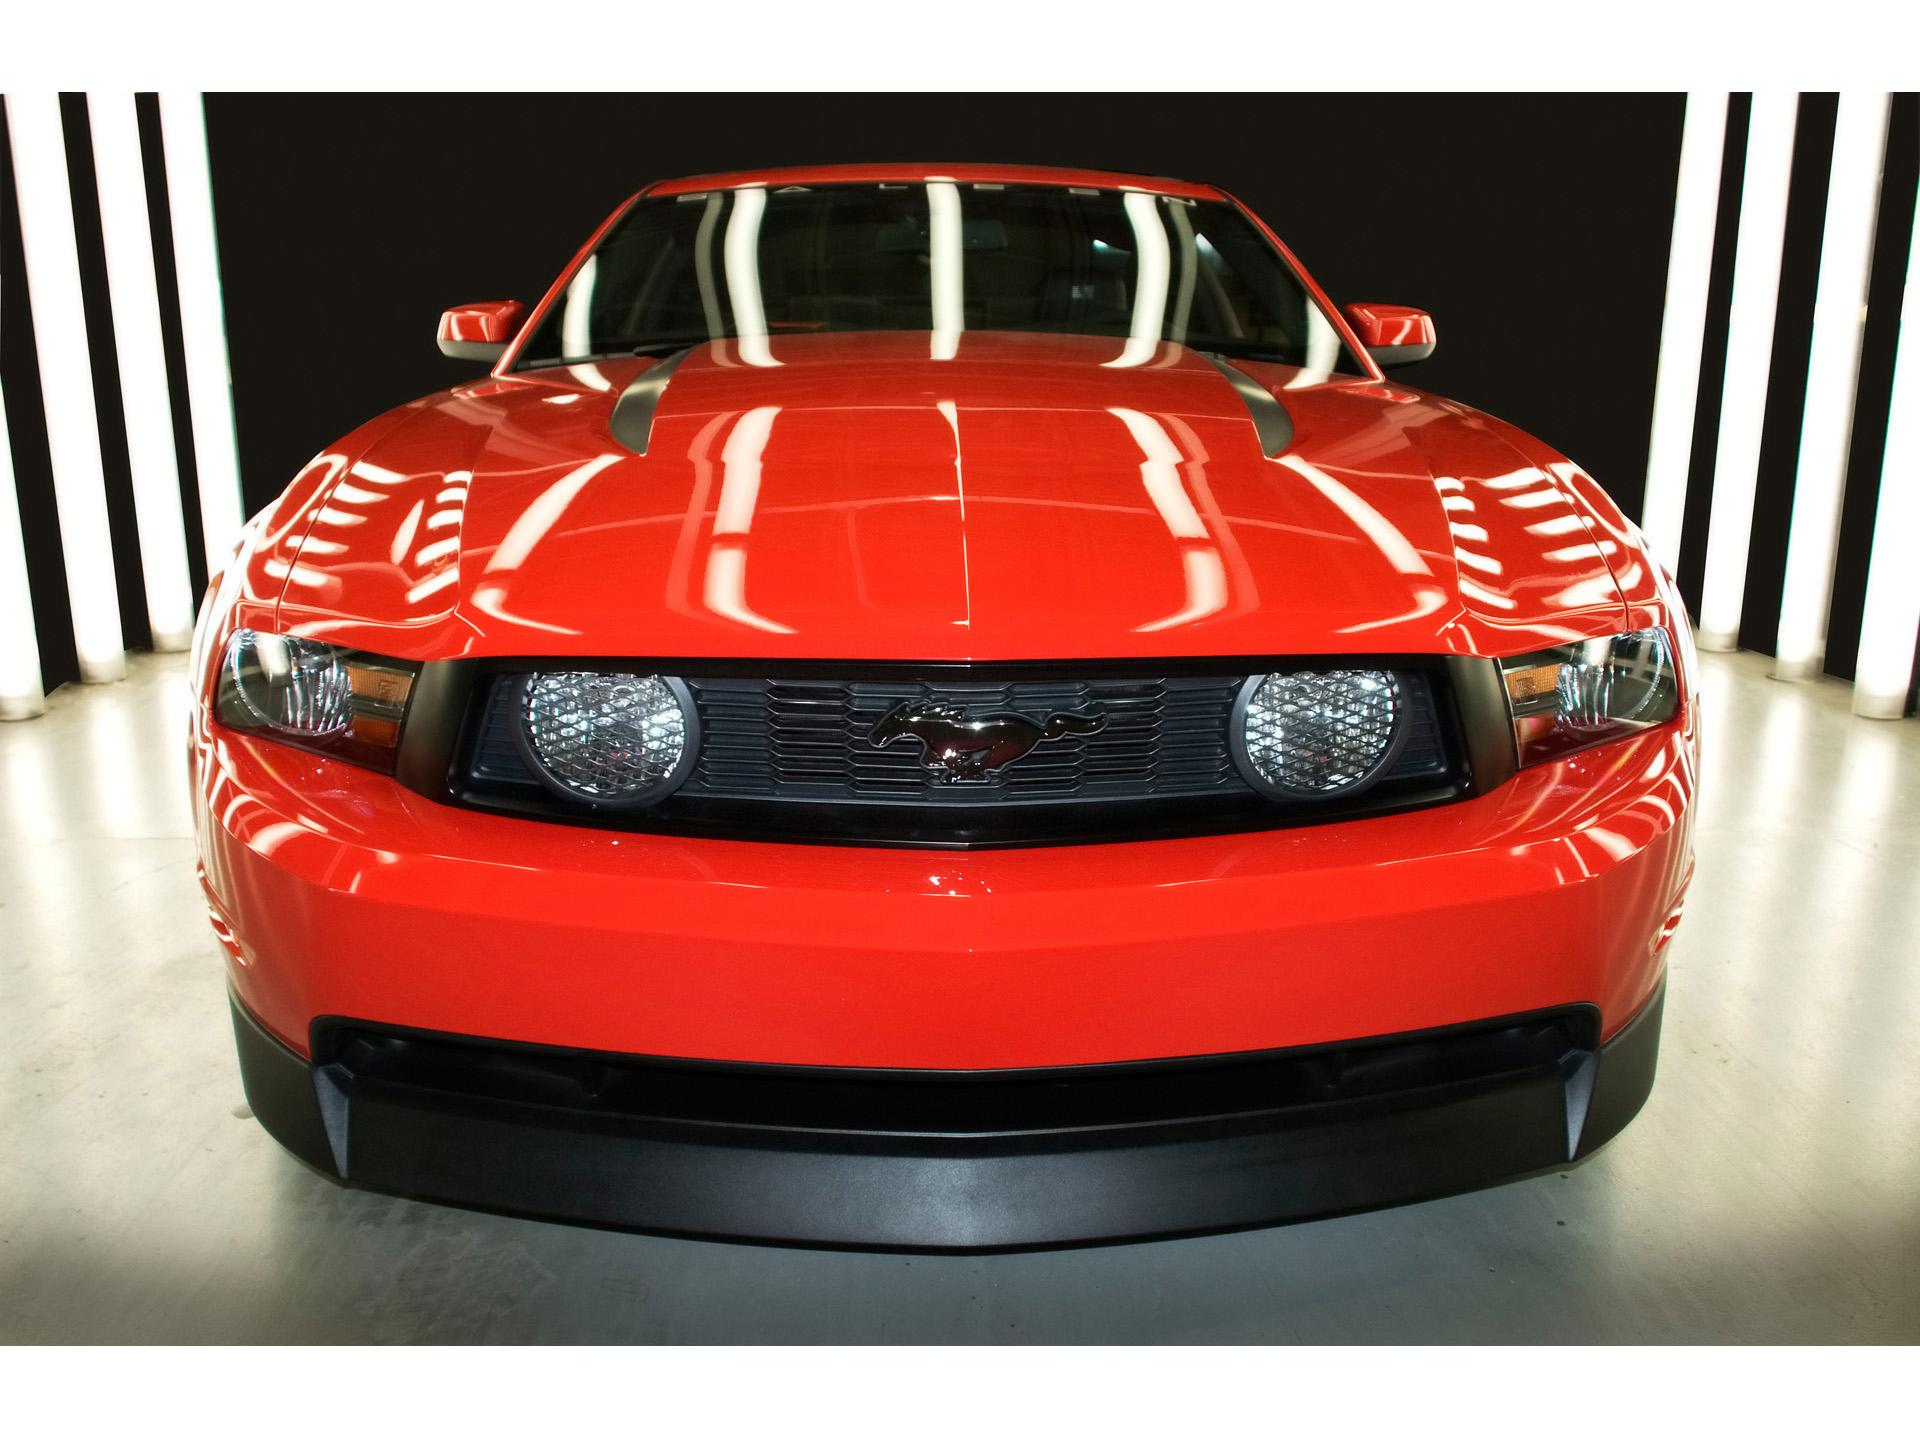 2010 saleen mustang 435s. Black Bedroom Furniture Sets. Home Design Ideas